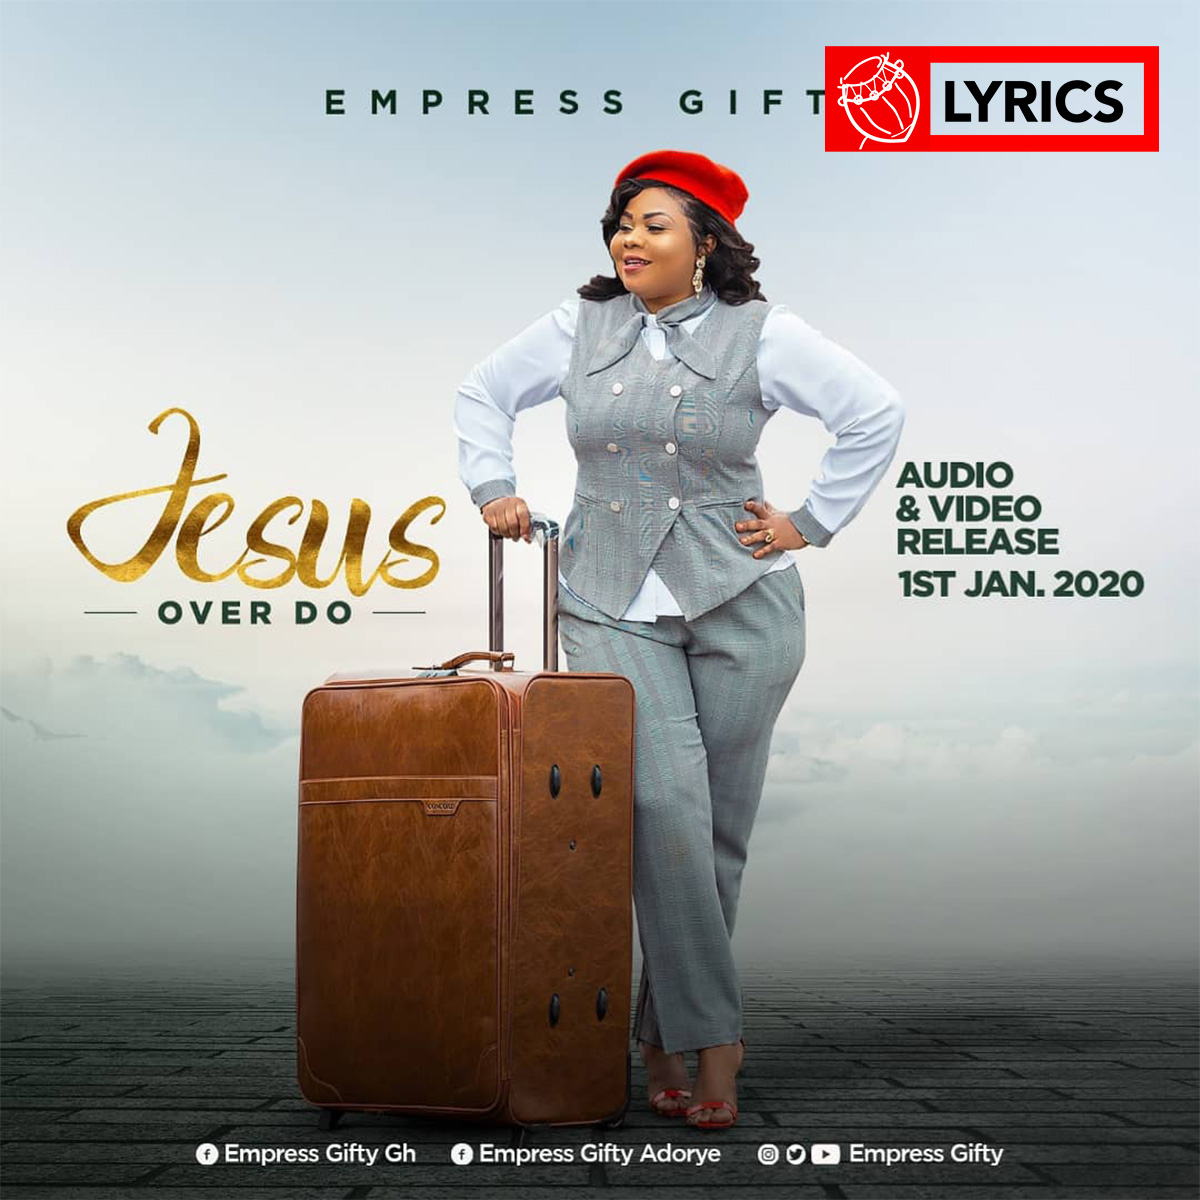 Lyrics: Jesus Over Do by Empress Gifty